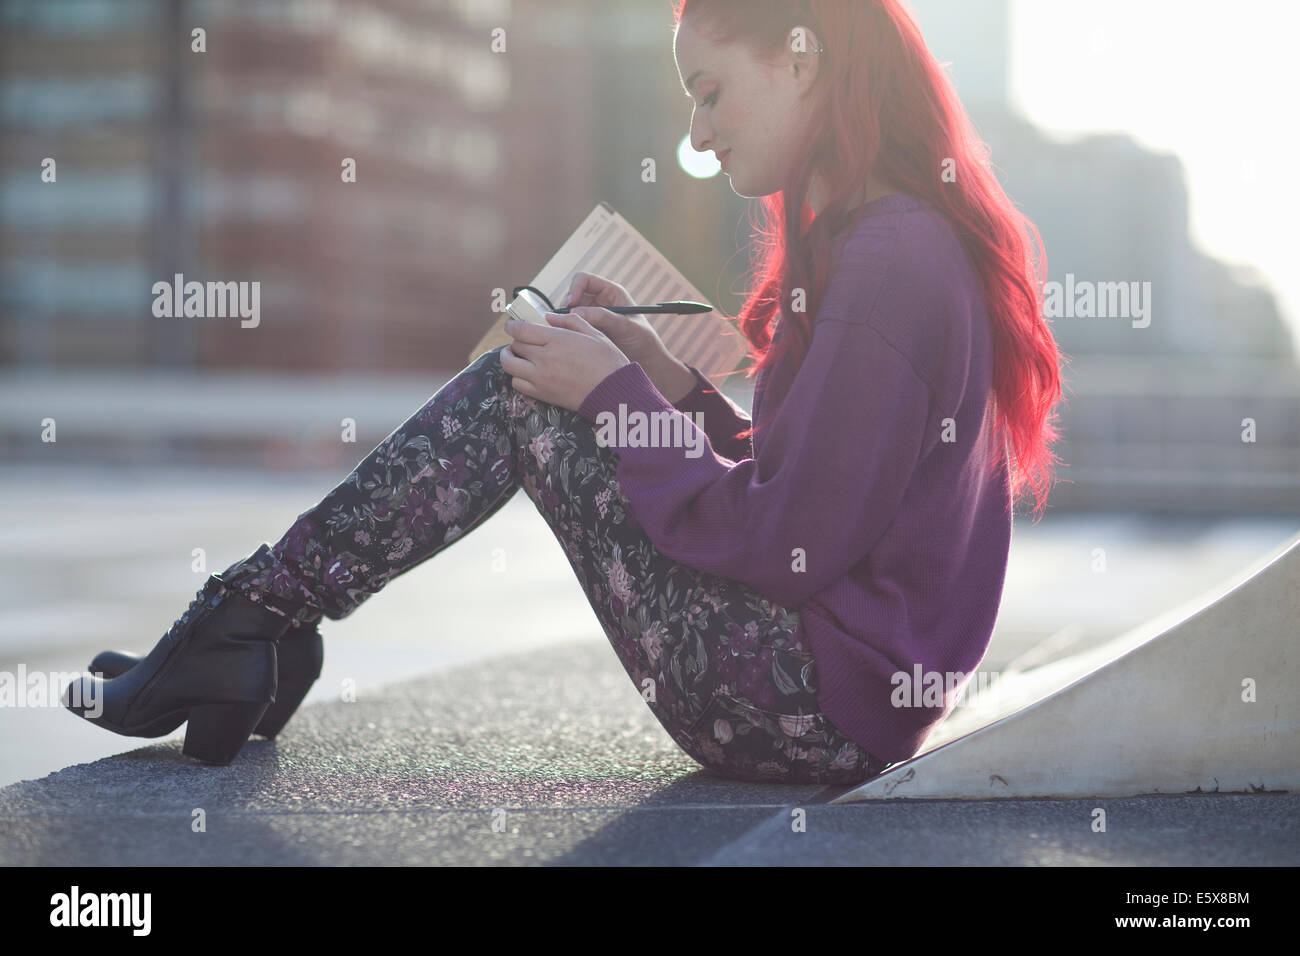 Young woman writing in notebook on city rooftop parking lot - Stock Image